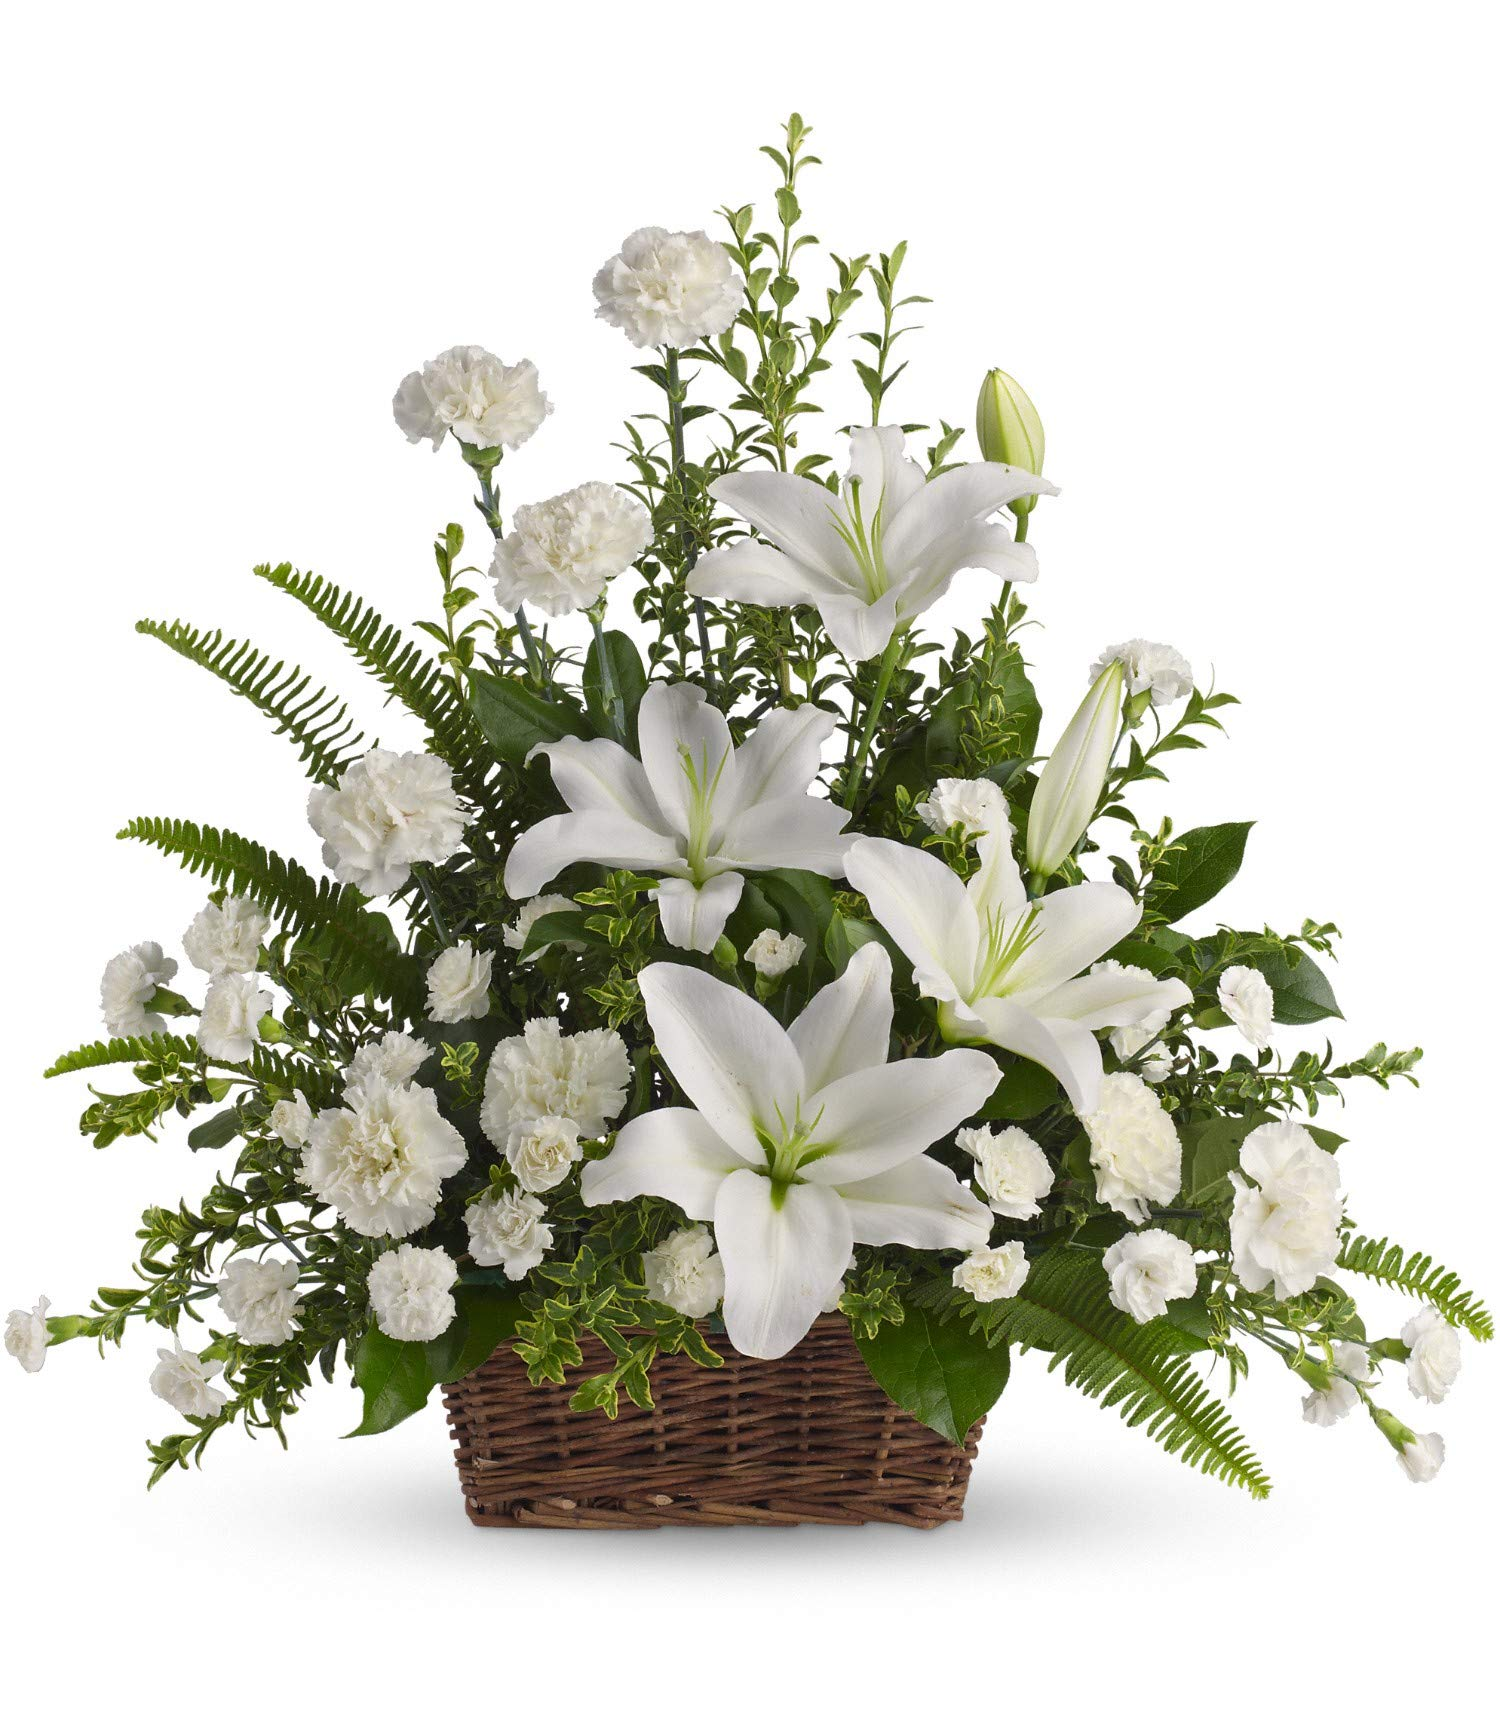 Peaceful White Lilies Basket - Fresh Flowers Hand Delivered - Columbus Area